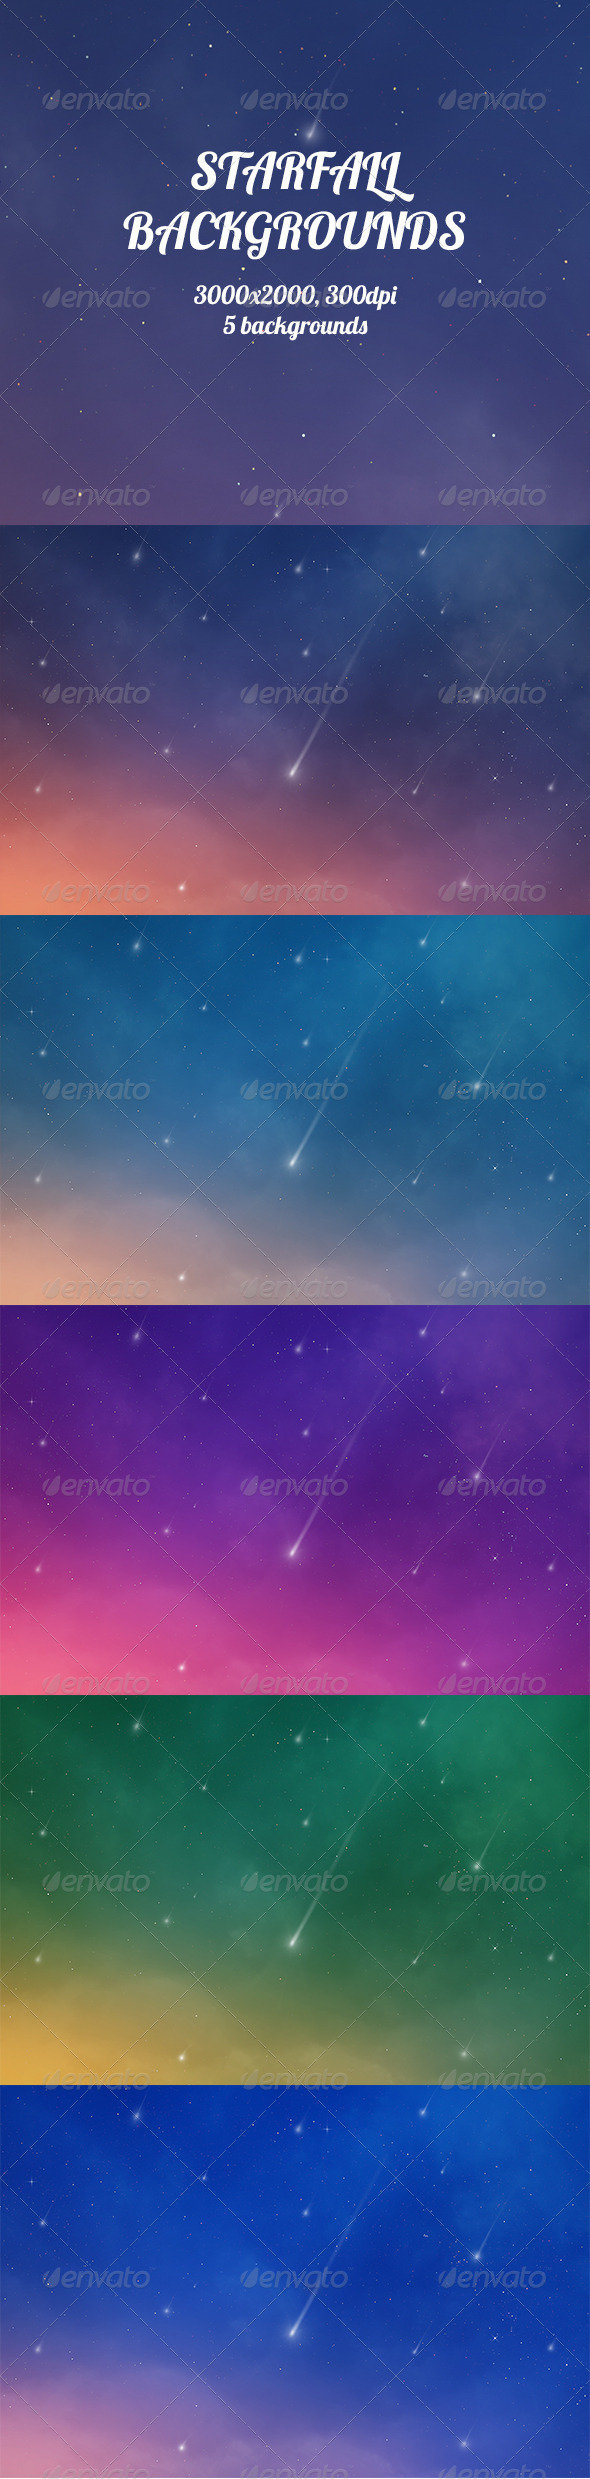 GraphicRiver Starfall Backgrounds 8533918